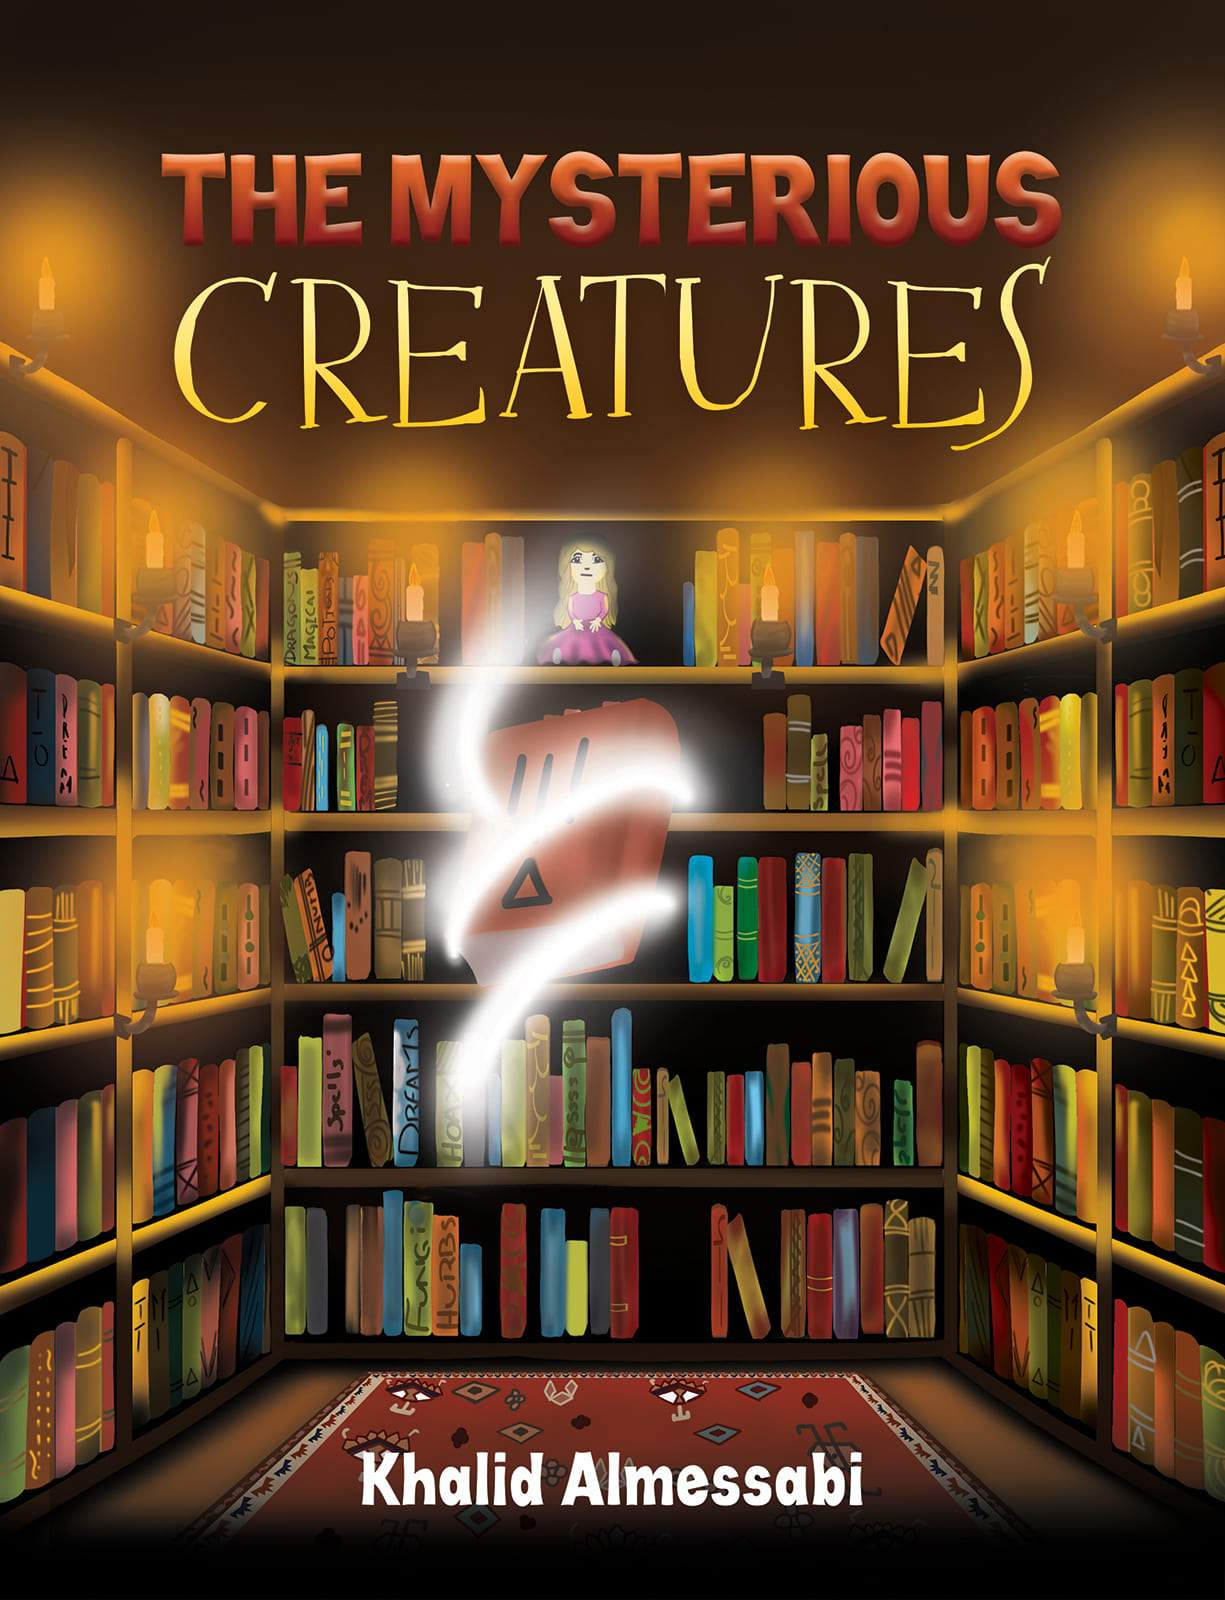 The Mysterious Creatures